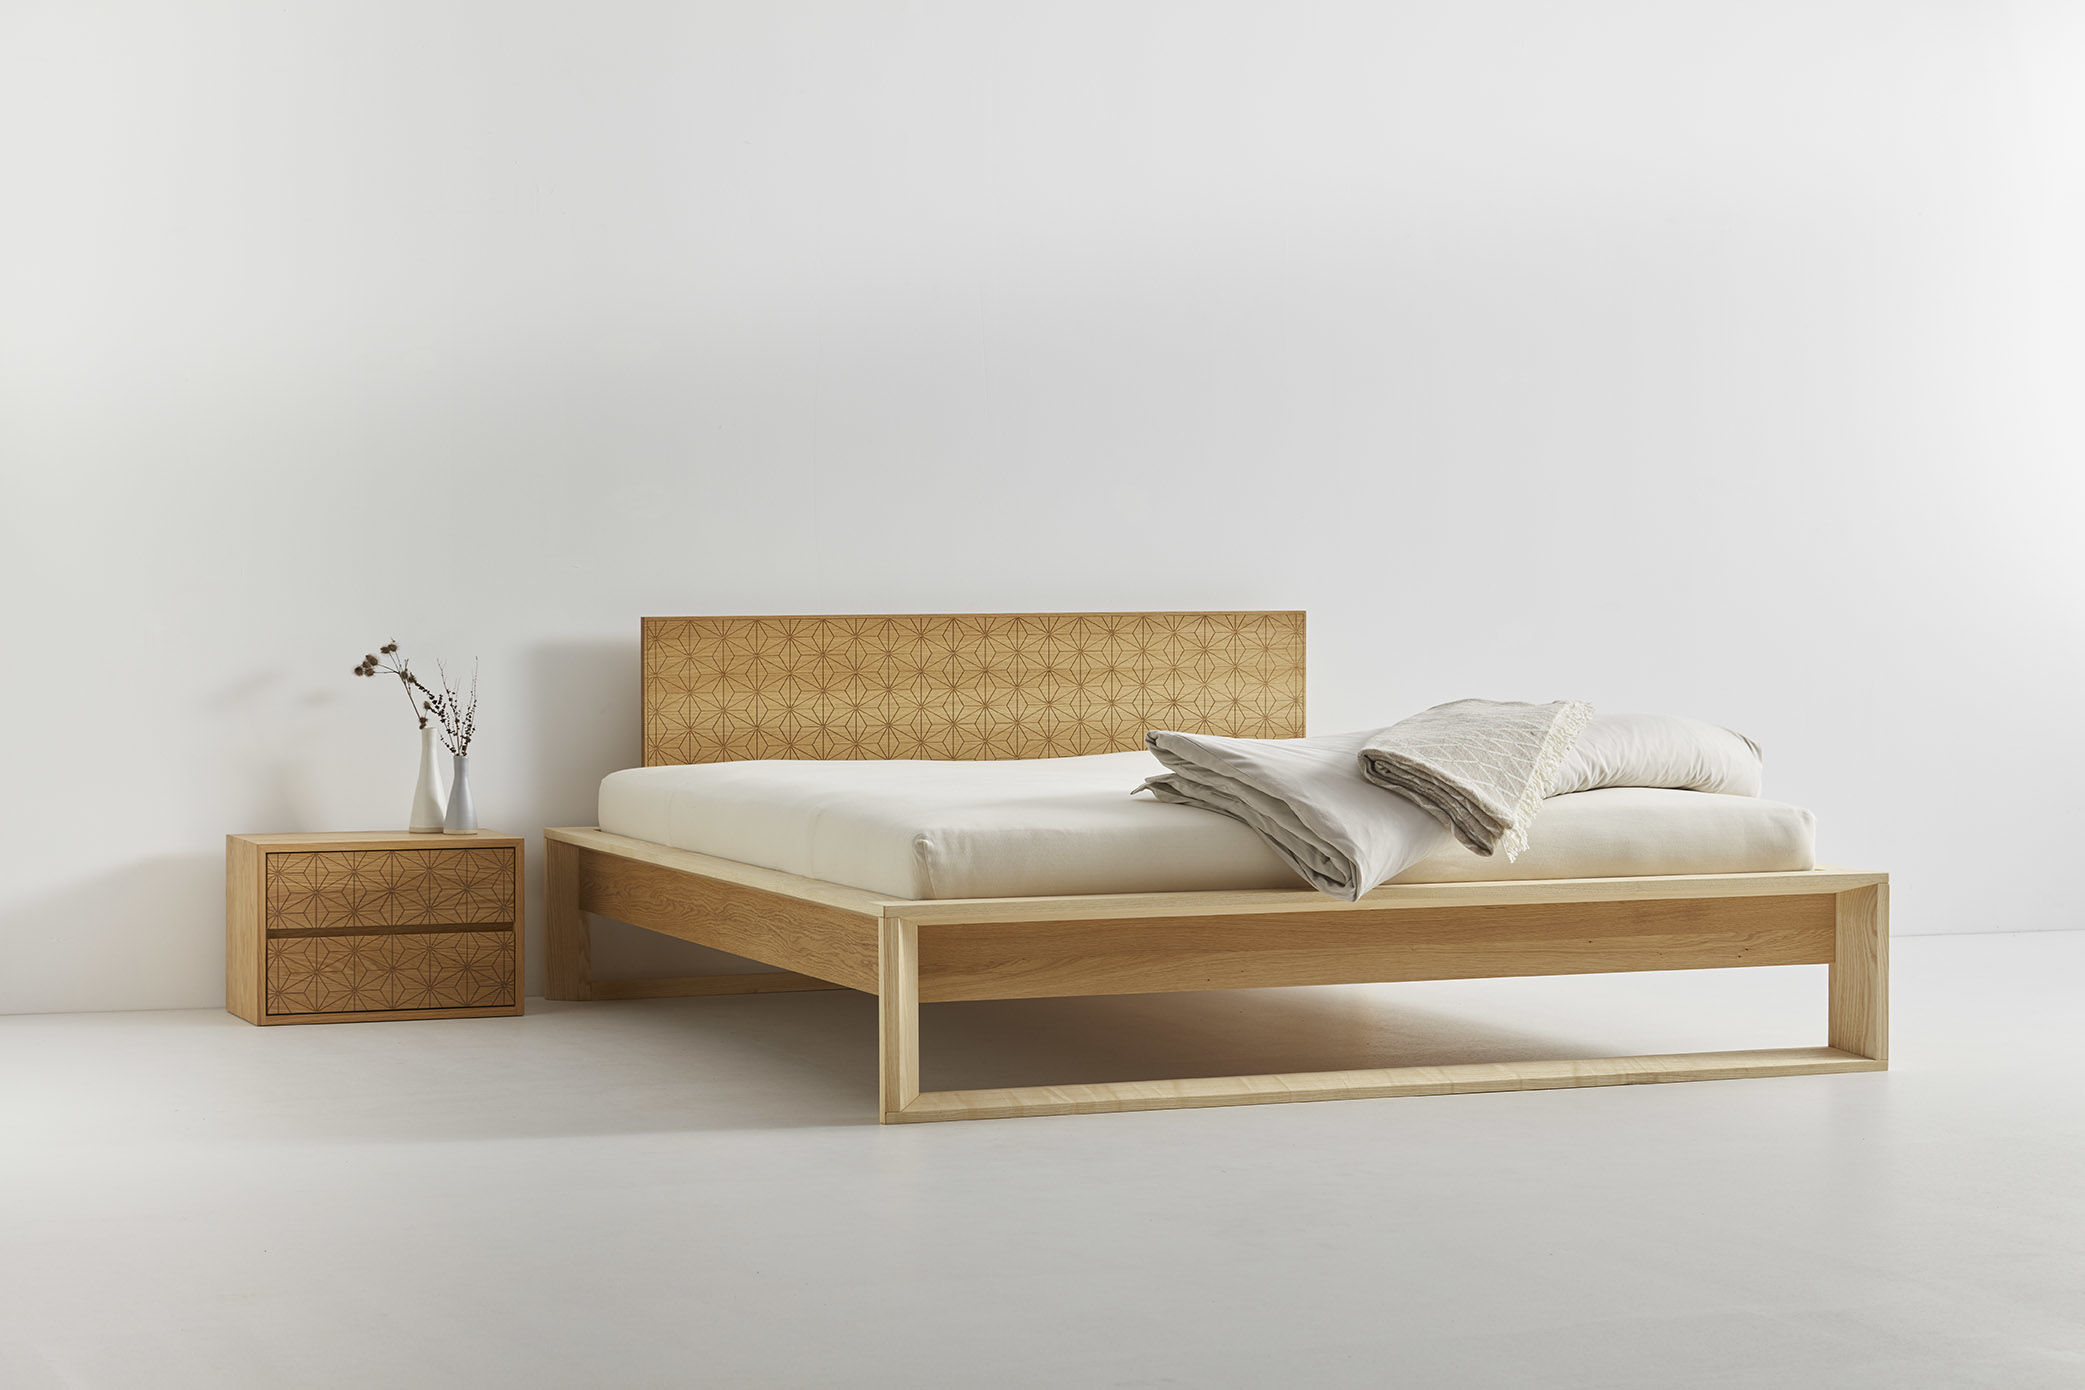 Asanoha Bed Grüne Erde By Destilat Architecture